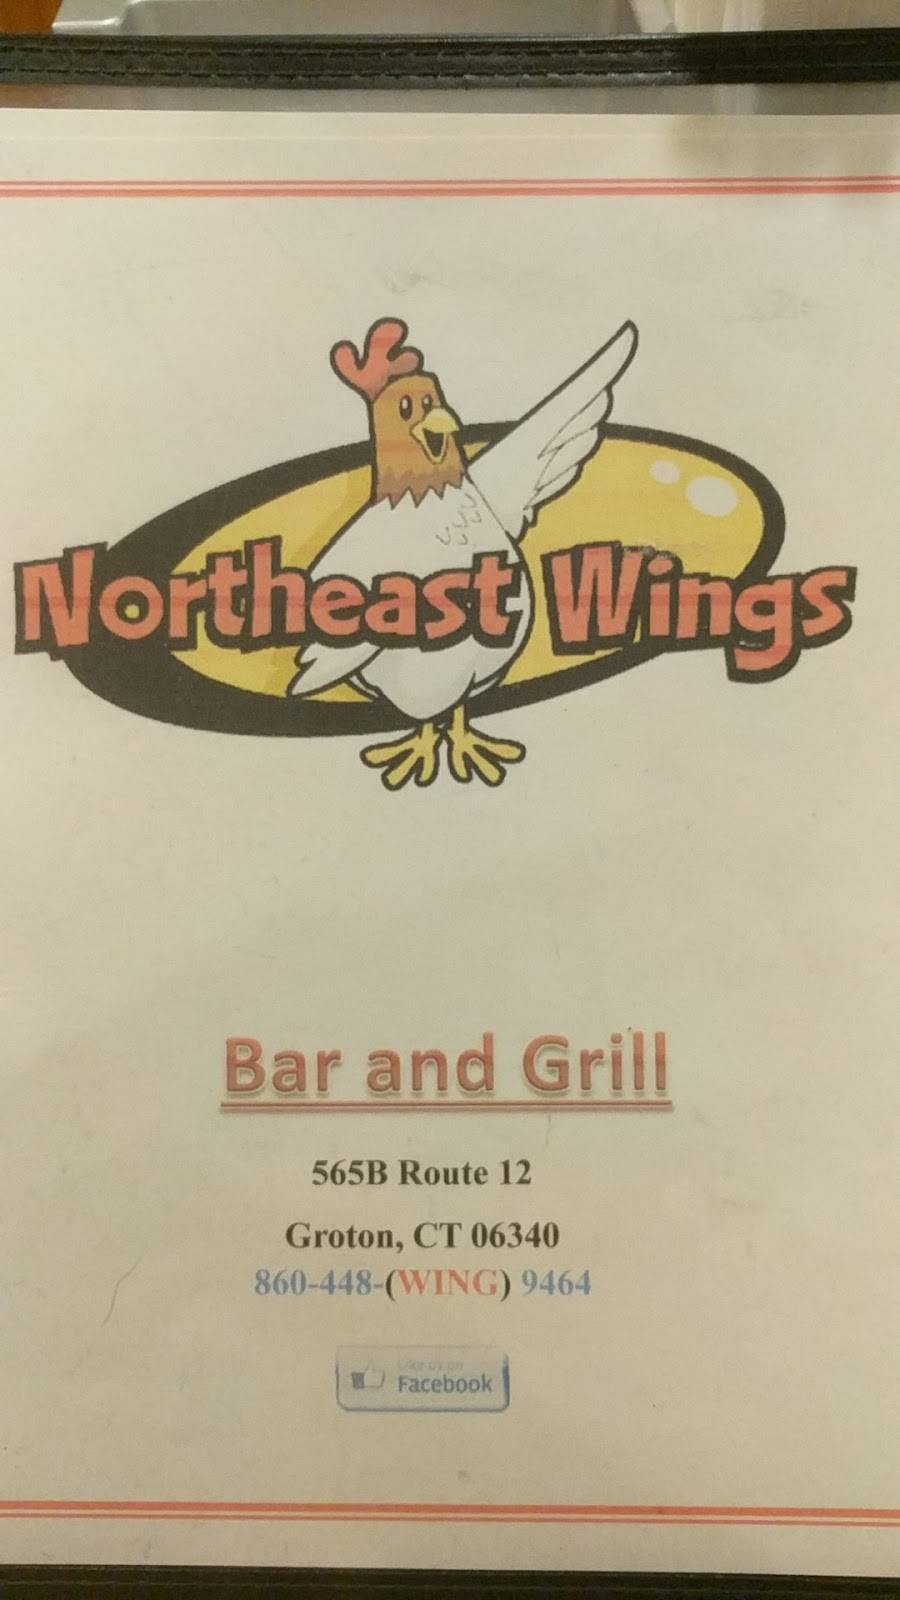 Northeast Wings | restaurant | 565 CT-12, Groton, CT 06340, USA | 8604489464 OR +1 860-448-9464